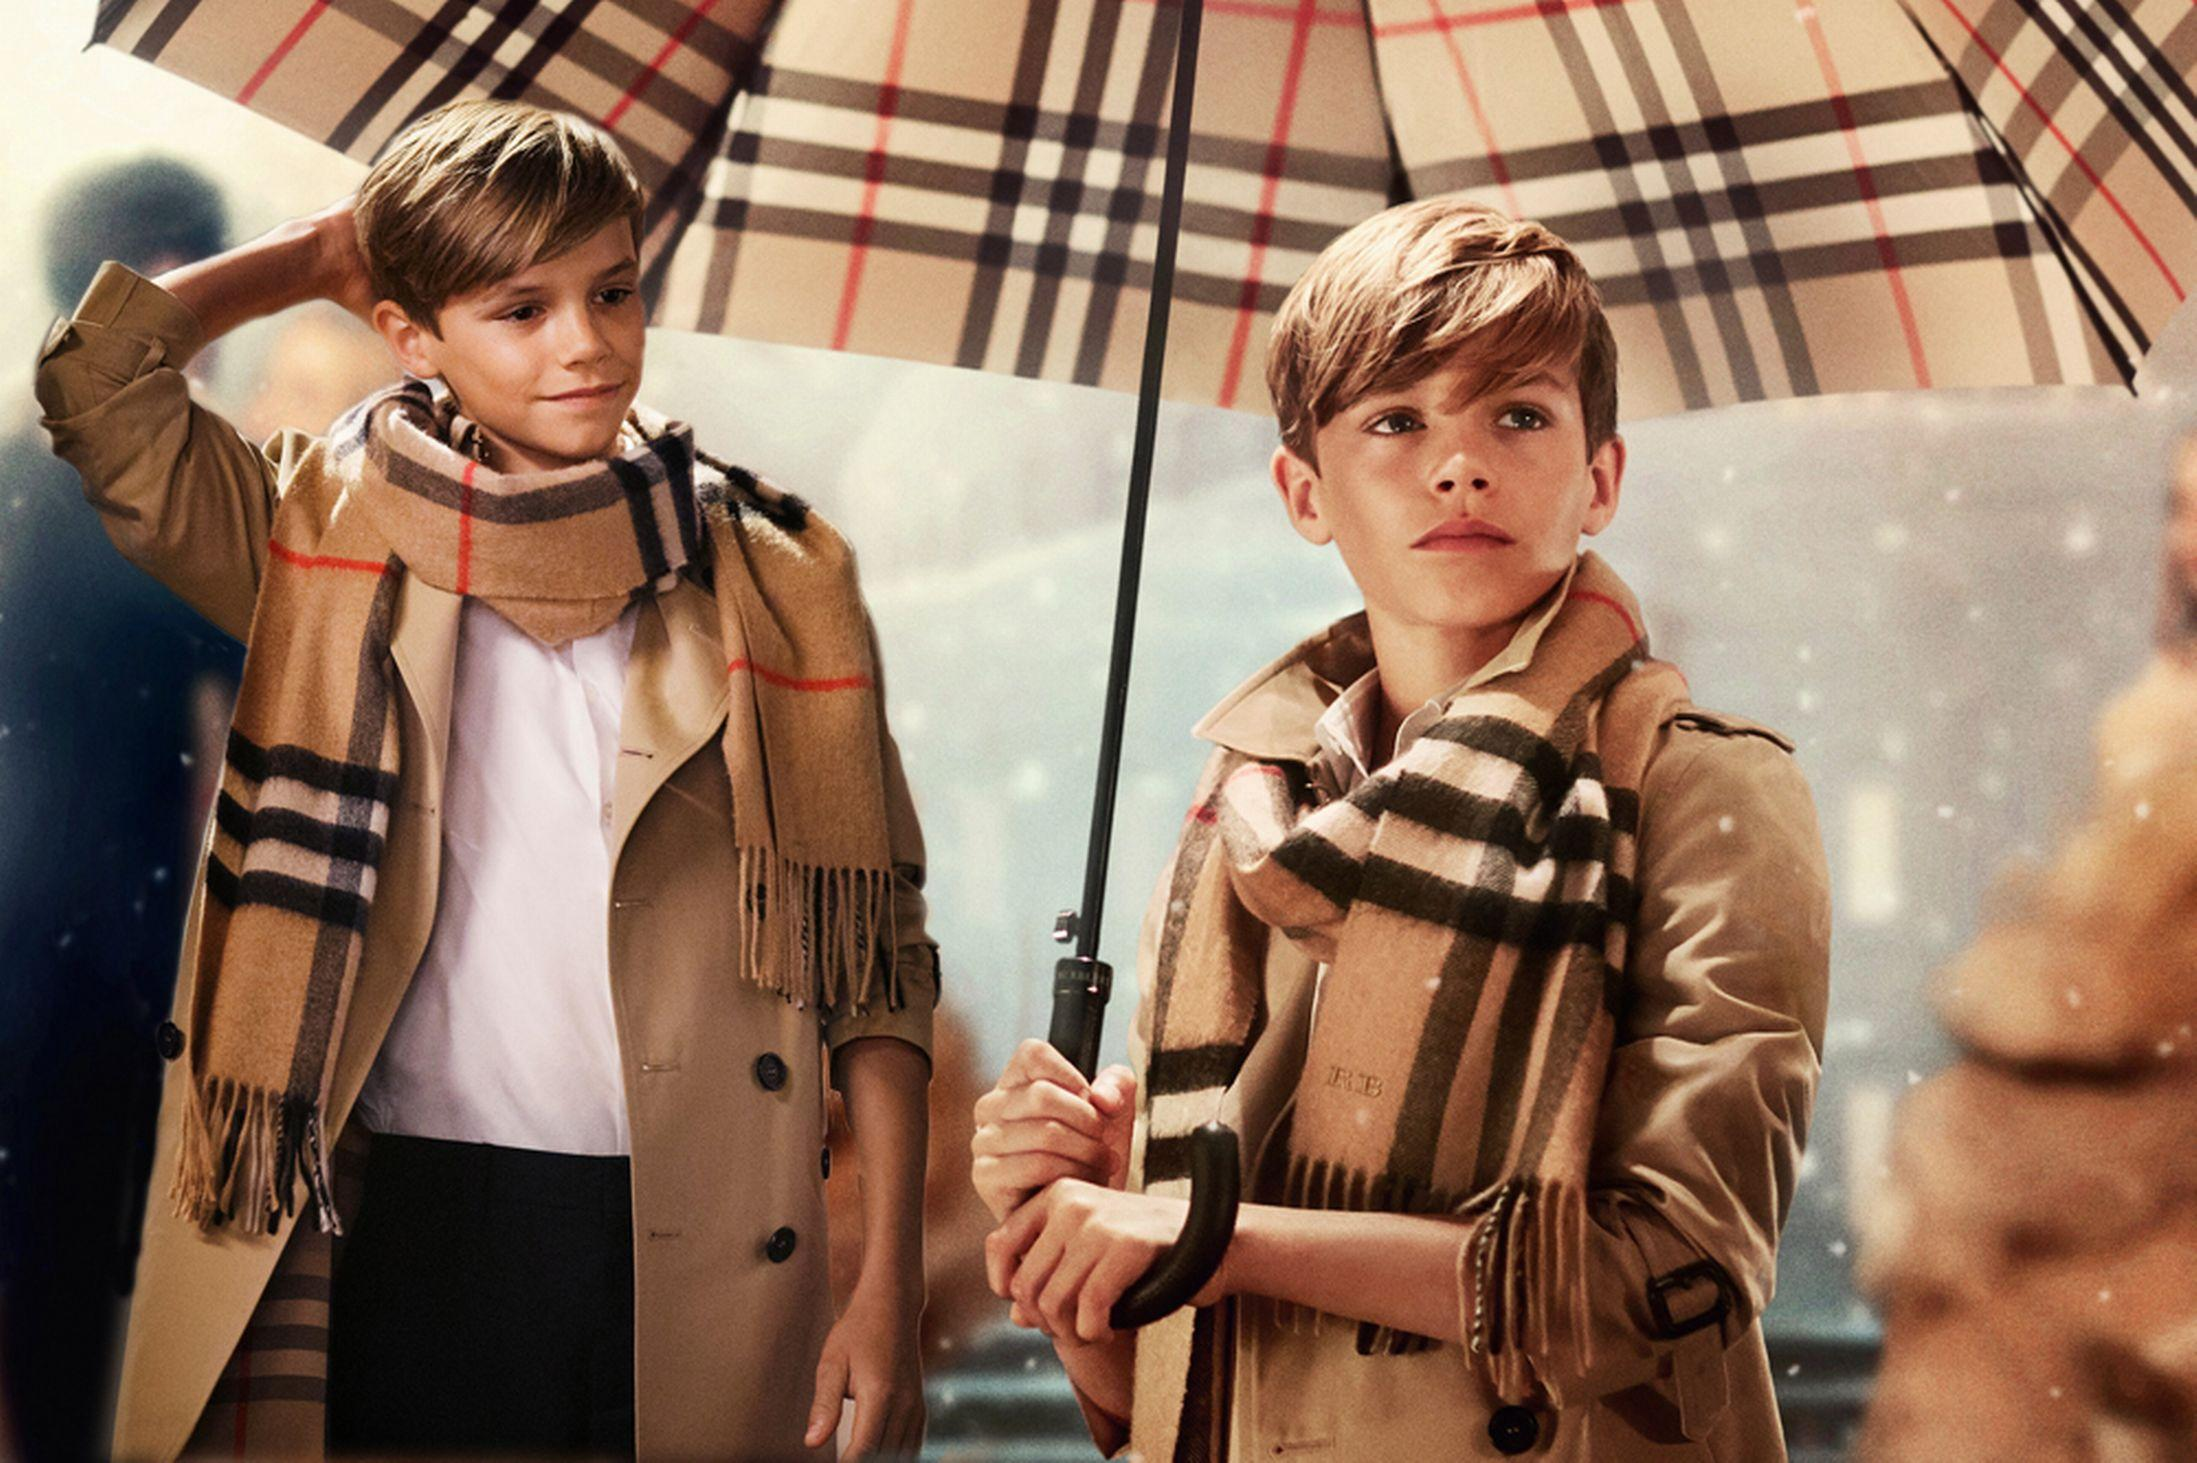 Extra 20% OFF Burberry Sales Items @ Neiman Marcus